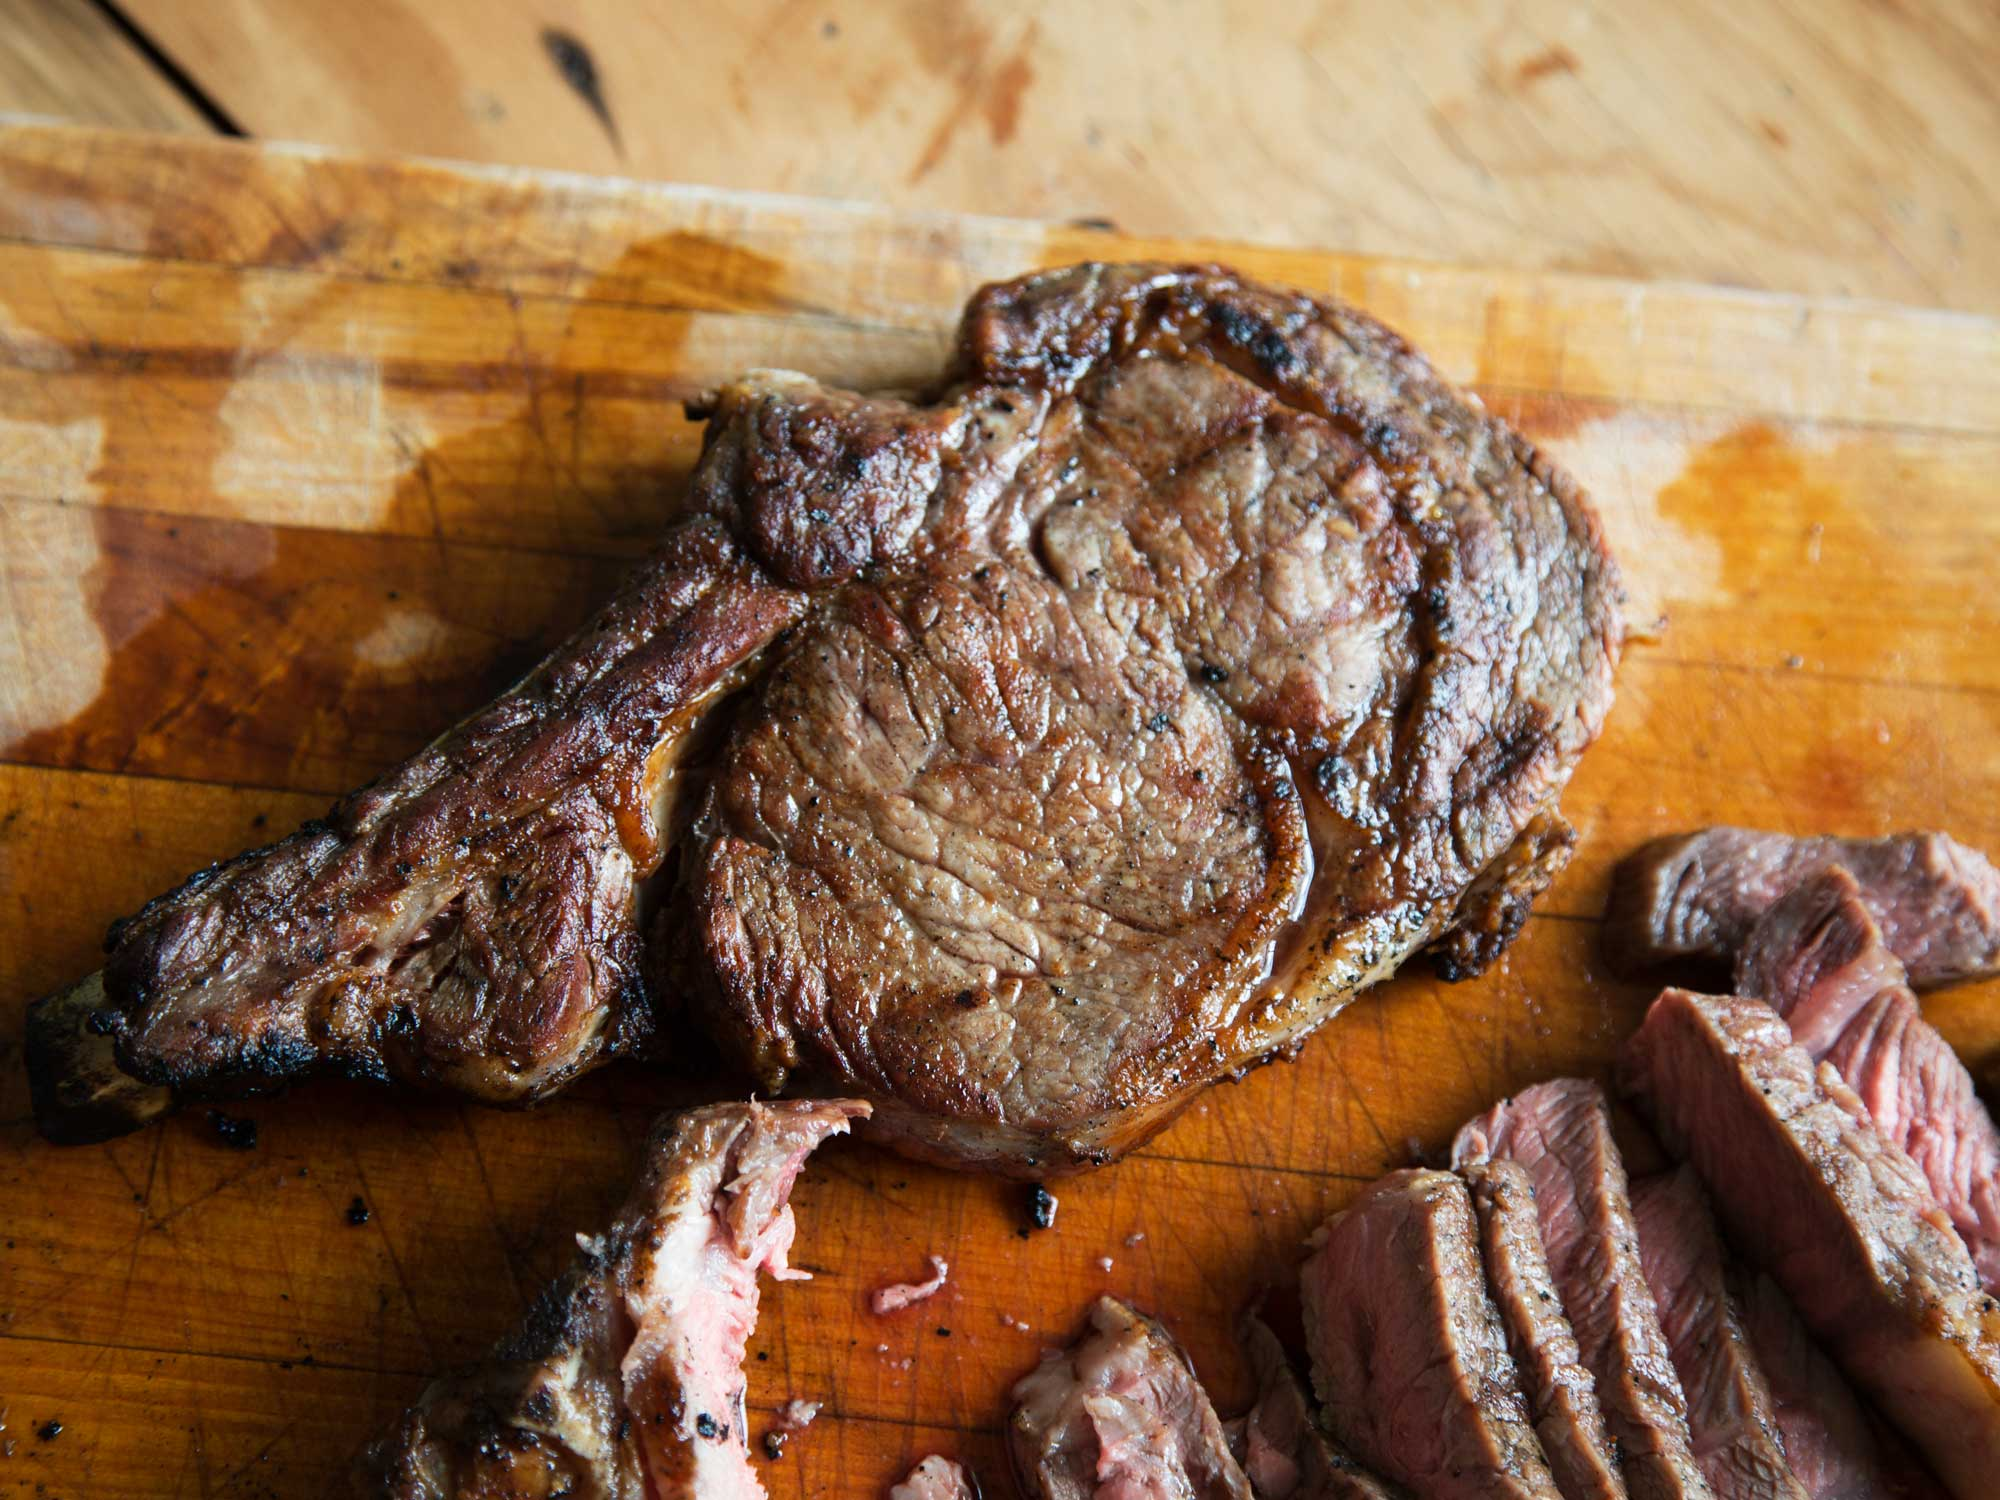 The Science of Grilling the Perfect Steak: Why Wood Smoke Matters